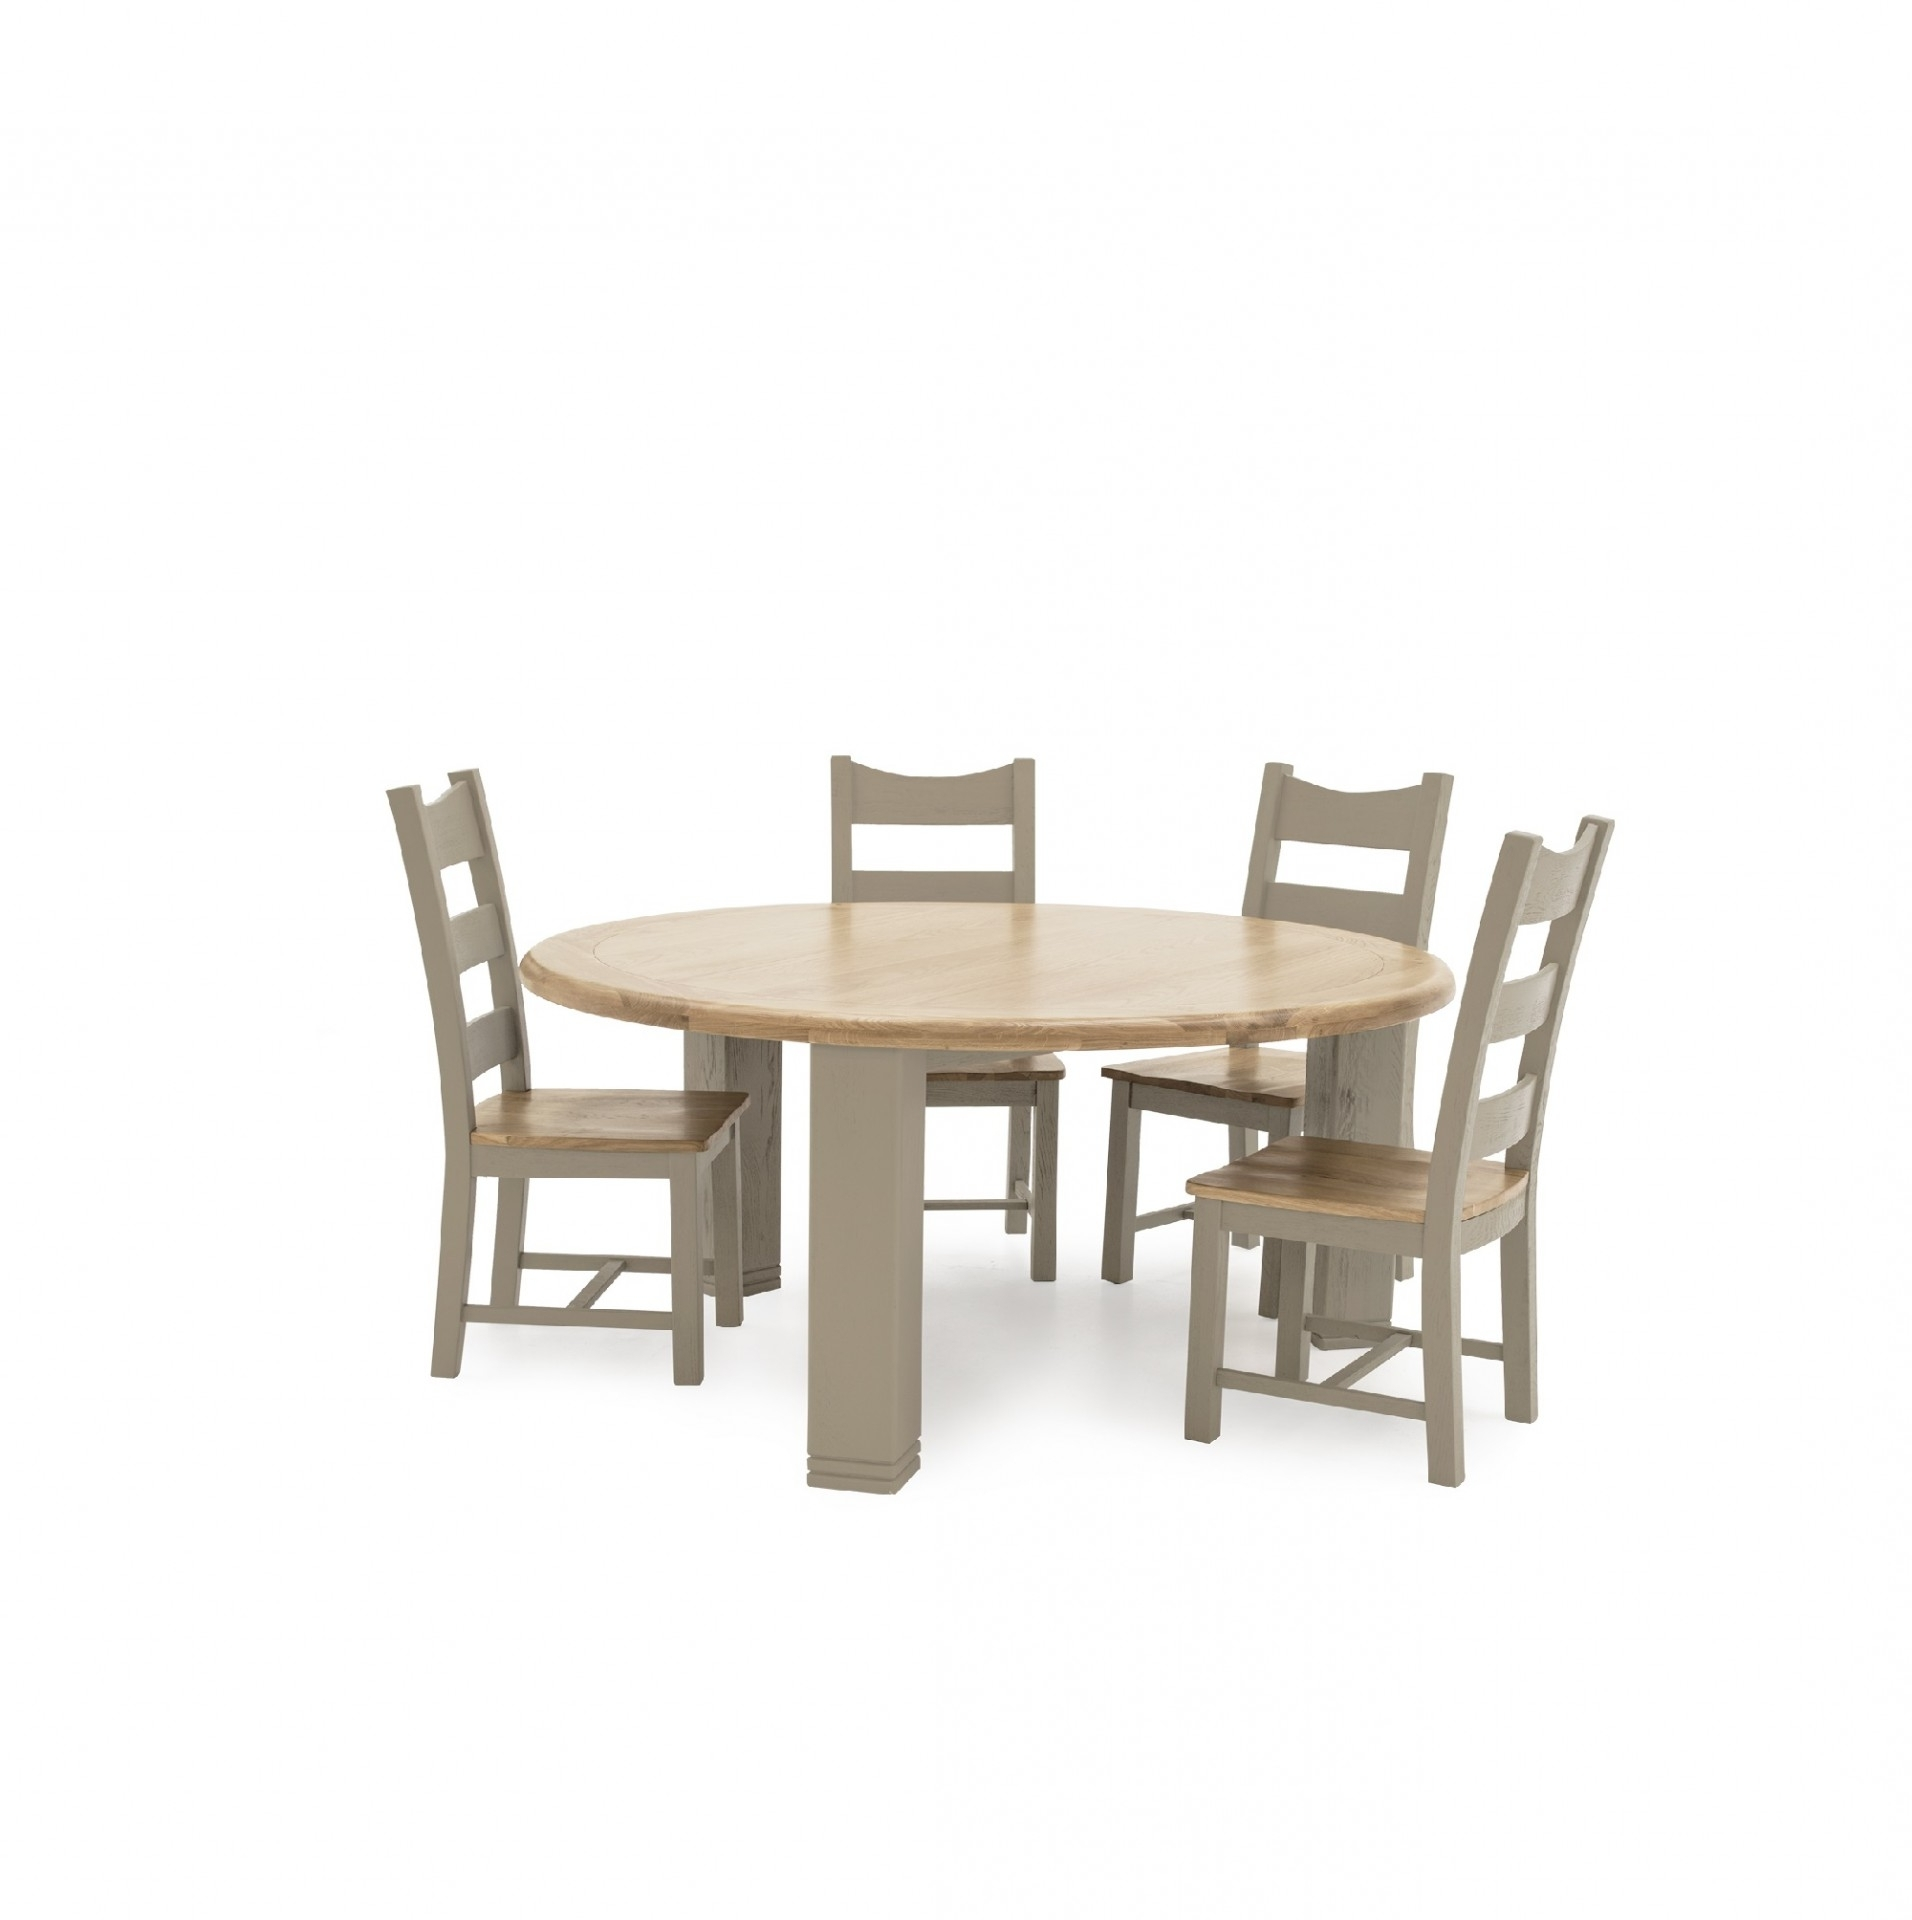 Logan Dining Tables Throughout Widely Used Logan Round Dining Table – Upstairs Downstairs (View 17 of 25)